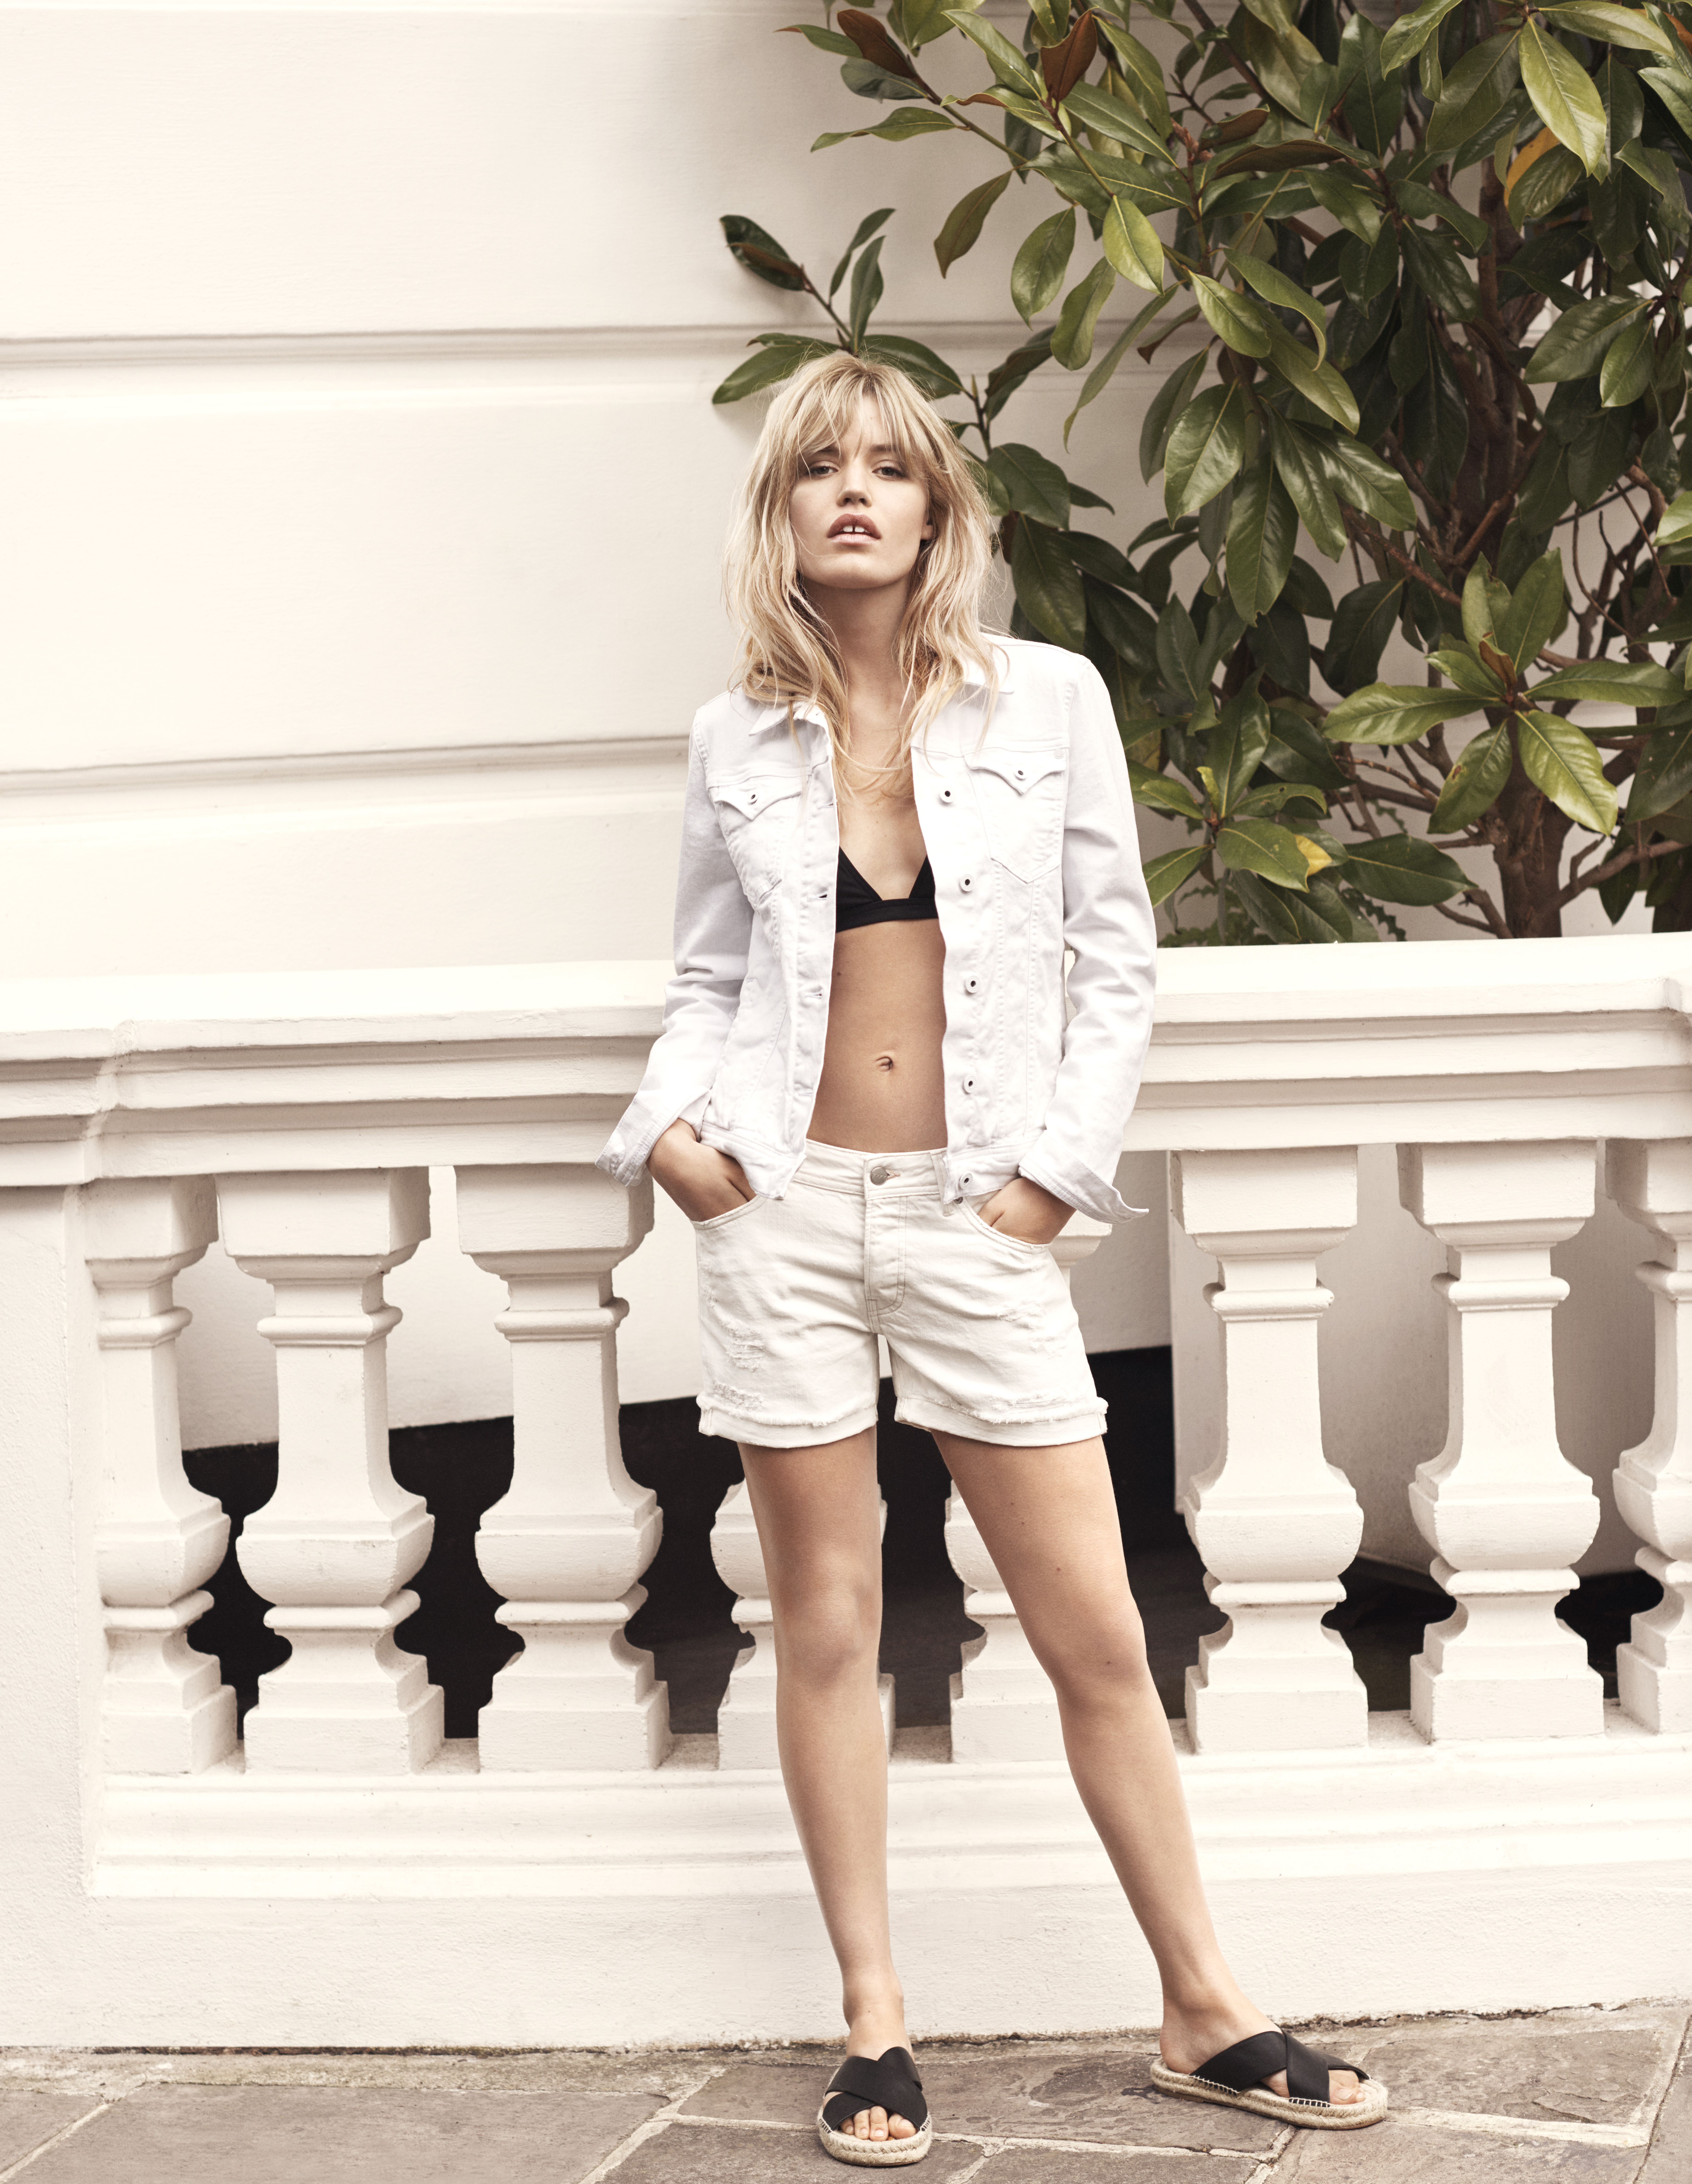 PEPE JEANS SS17 Campaign - WALK THIS WAY - 5